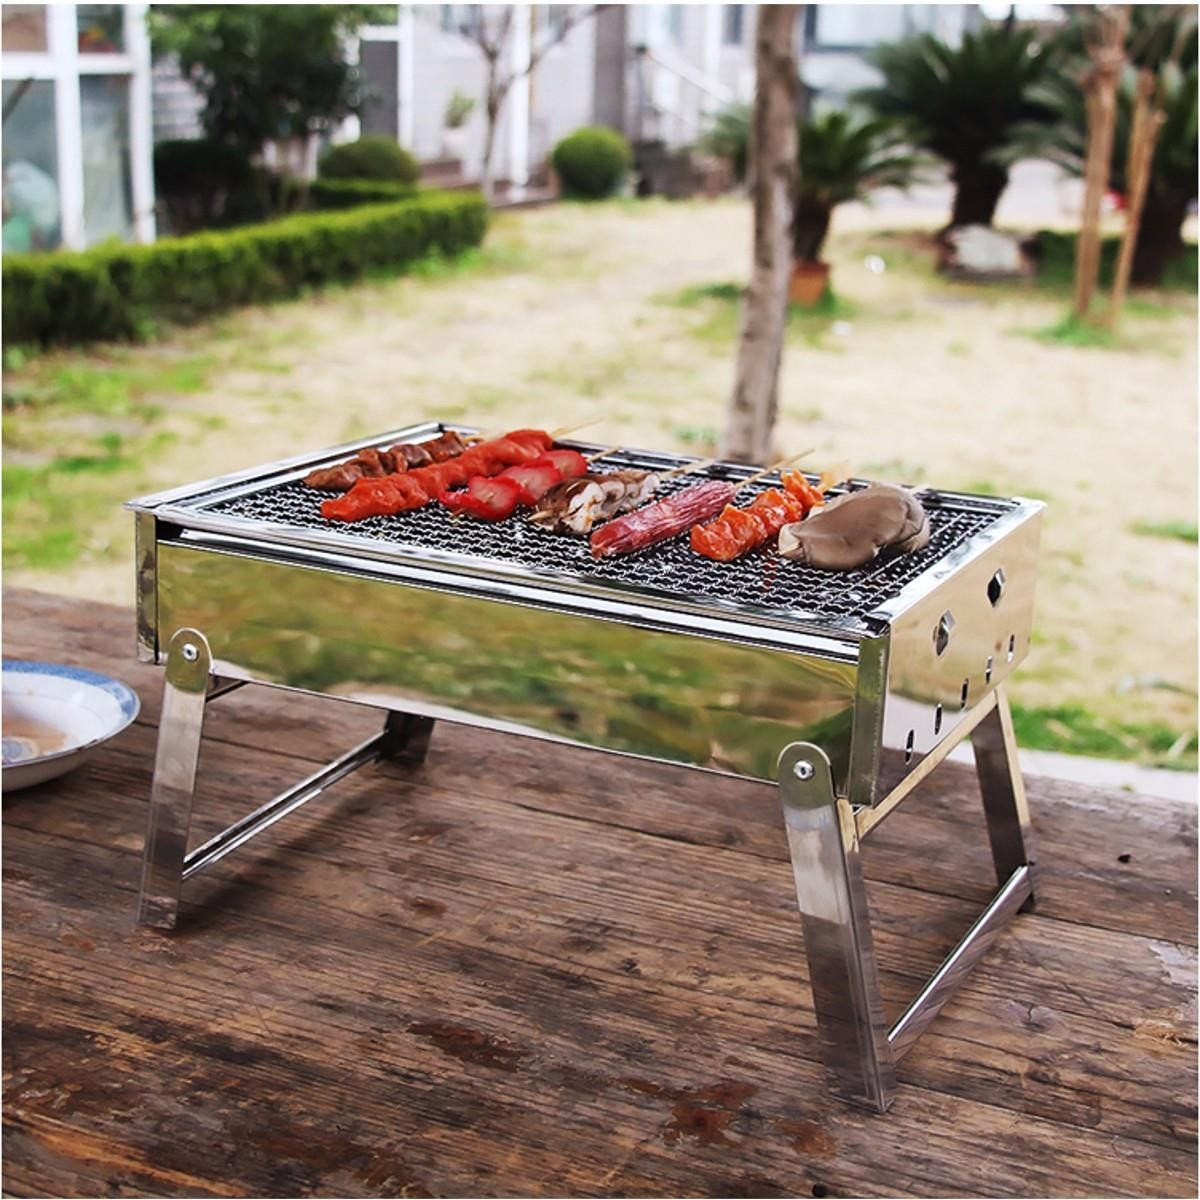 Fancy BBQ Barbeque Portable Simple and Easy Grill Without Charcoal